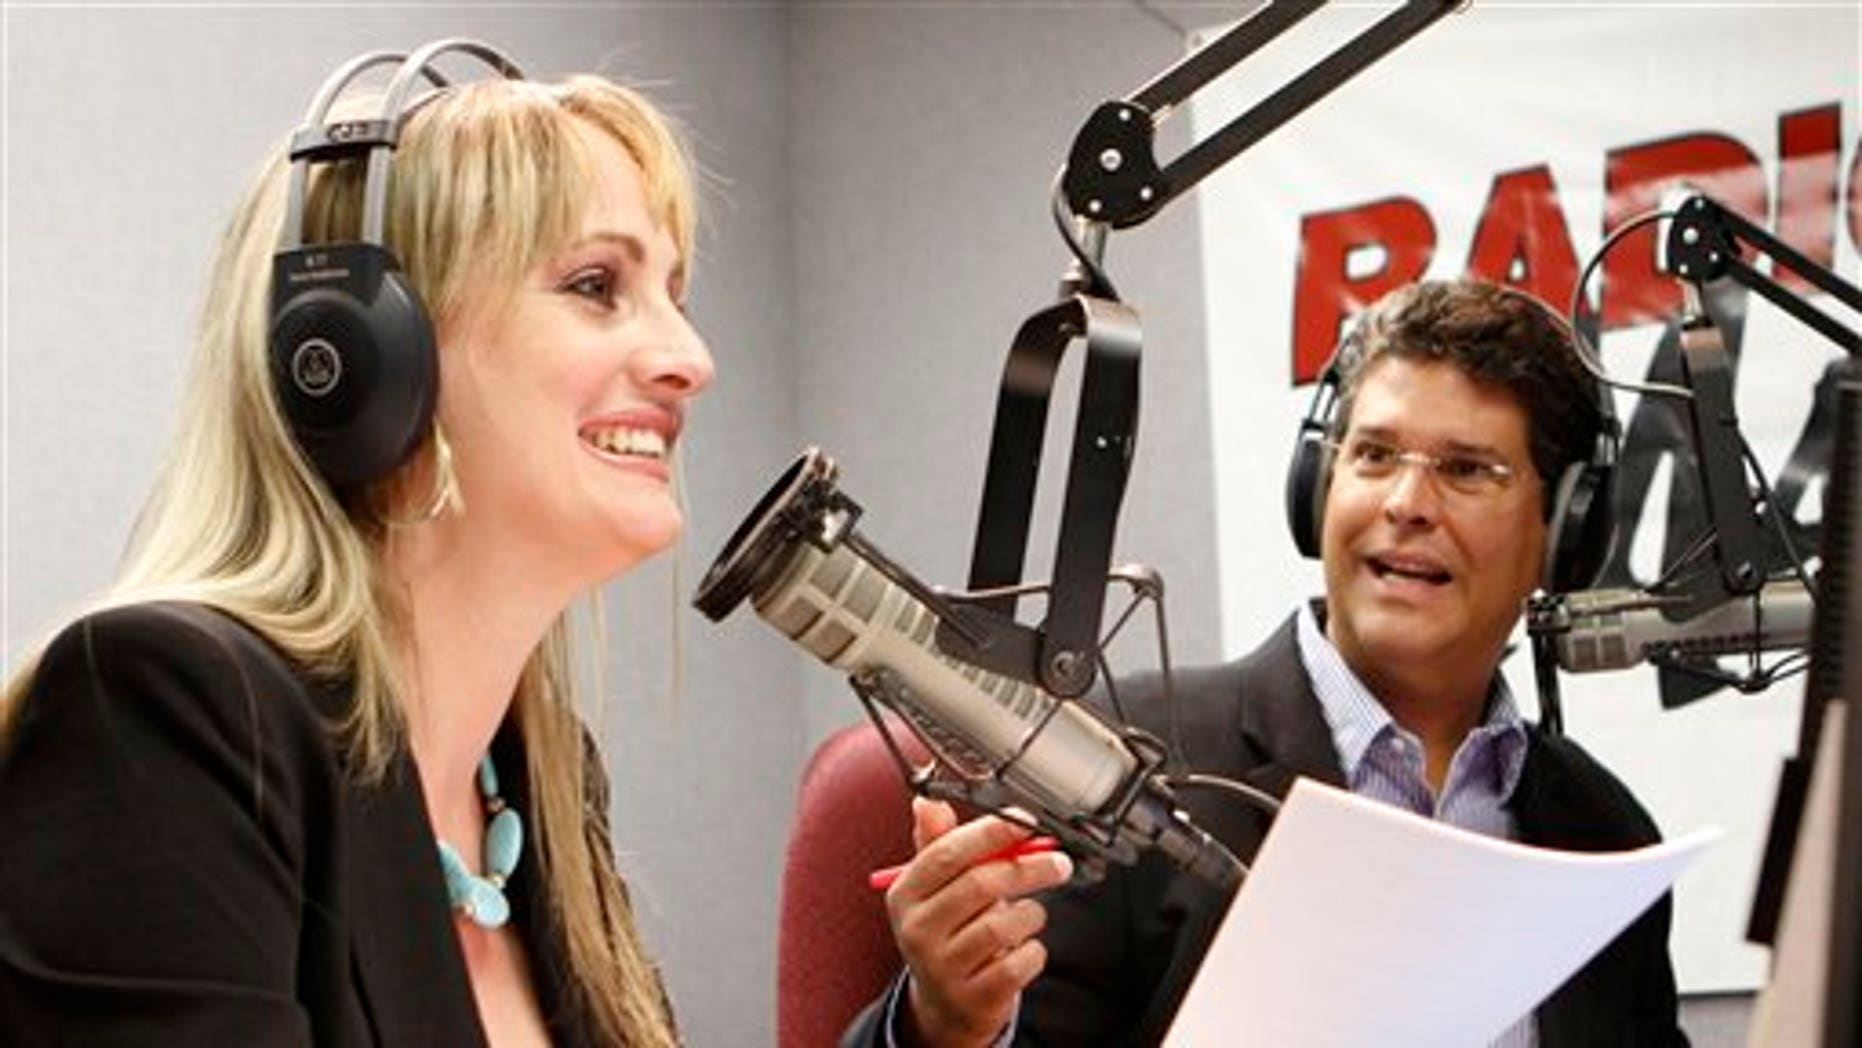 In this April 21, 2011 photo, Radio Marti's El Revoltillo, Spanish for The Scramble hosts Karen Caballero, left, and Alfredo Jacomino laugh during their radio show in Miami. A new radio show  features Caballero and Jacomino, exchanging Regis & Kelly-like banter while reading off items and services for sale from a Cuban website. The program is more practical than political since few on the island have computer access. Based on nothing more than a Cuban-style Craigslist, it seems to work, mixing useful information with humor. (AP Photo/Alan Diaz)